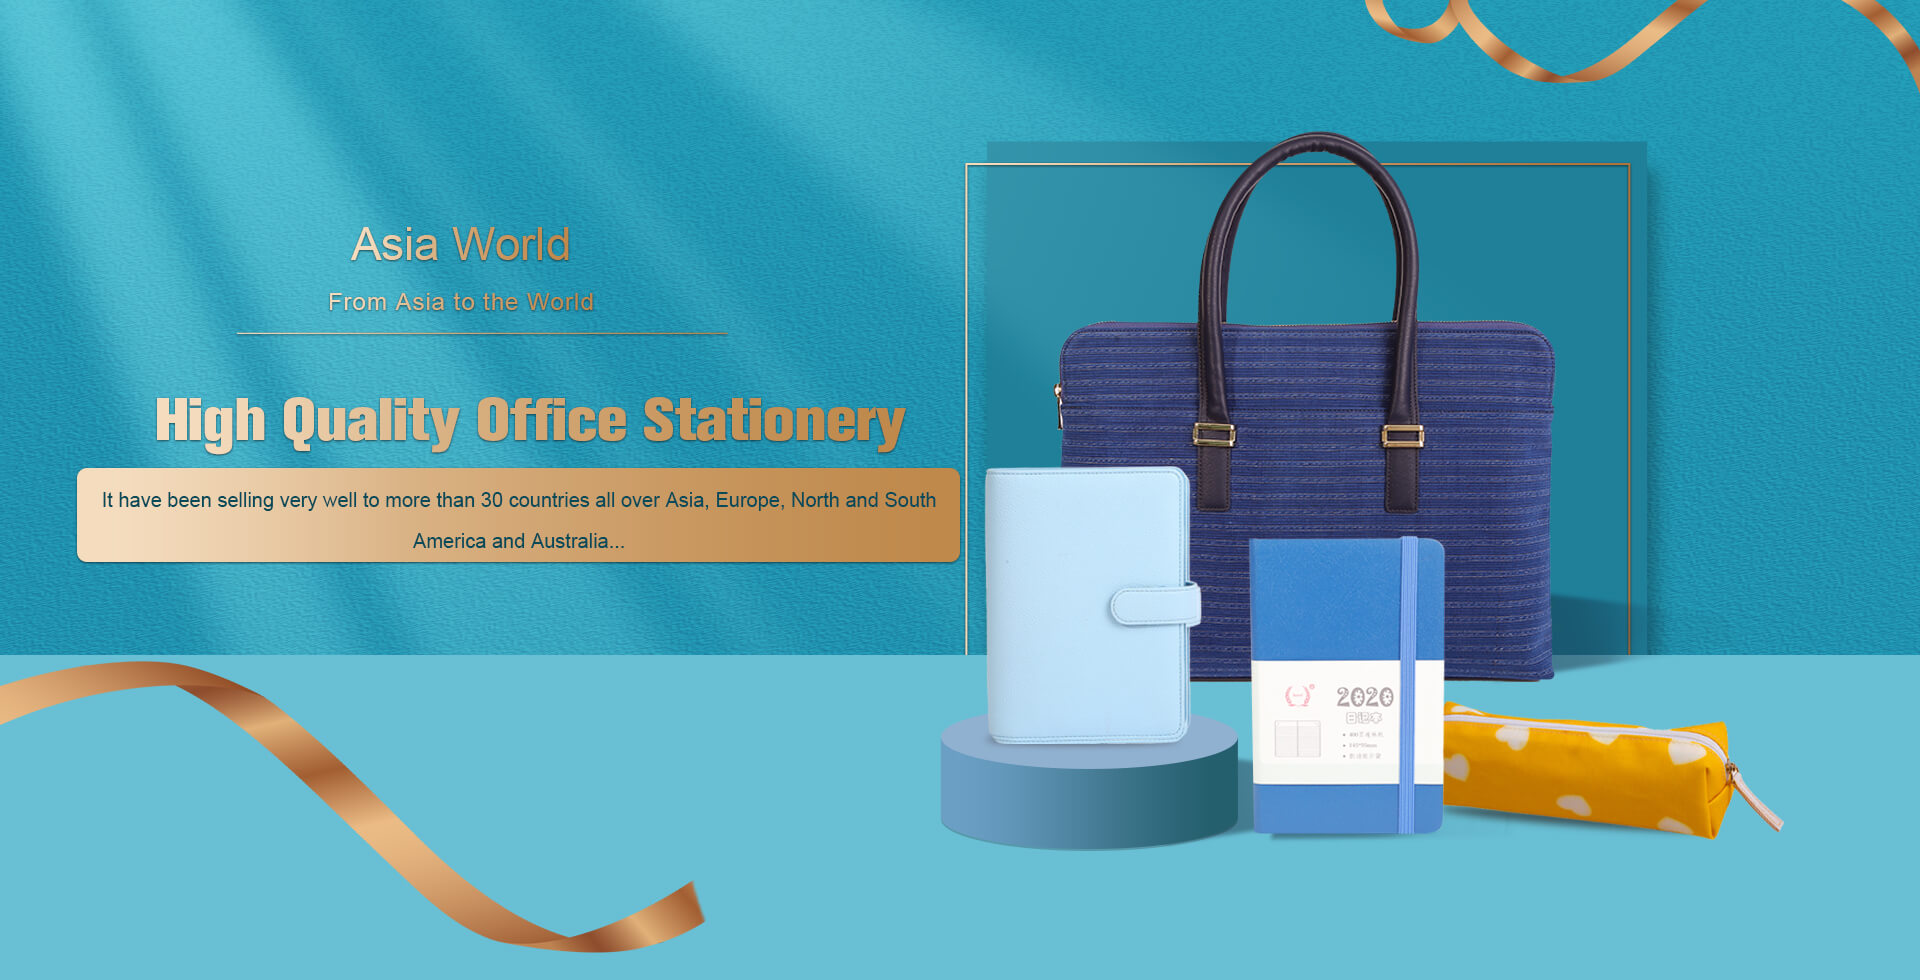 High Quality Office Stationery. Product sale to Asia, Europe, America, Australia and so on, over thirty countries and regions.